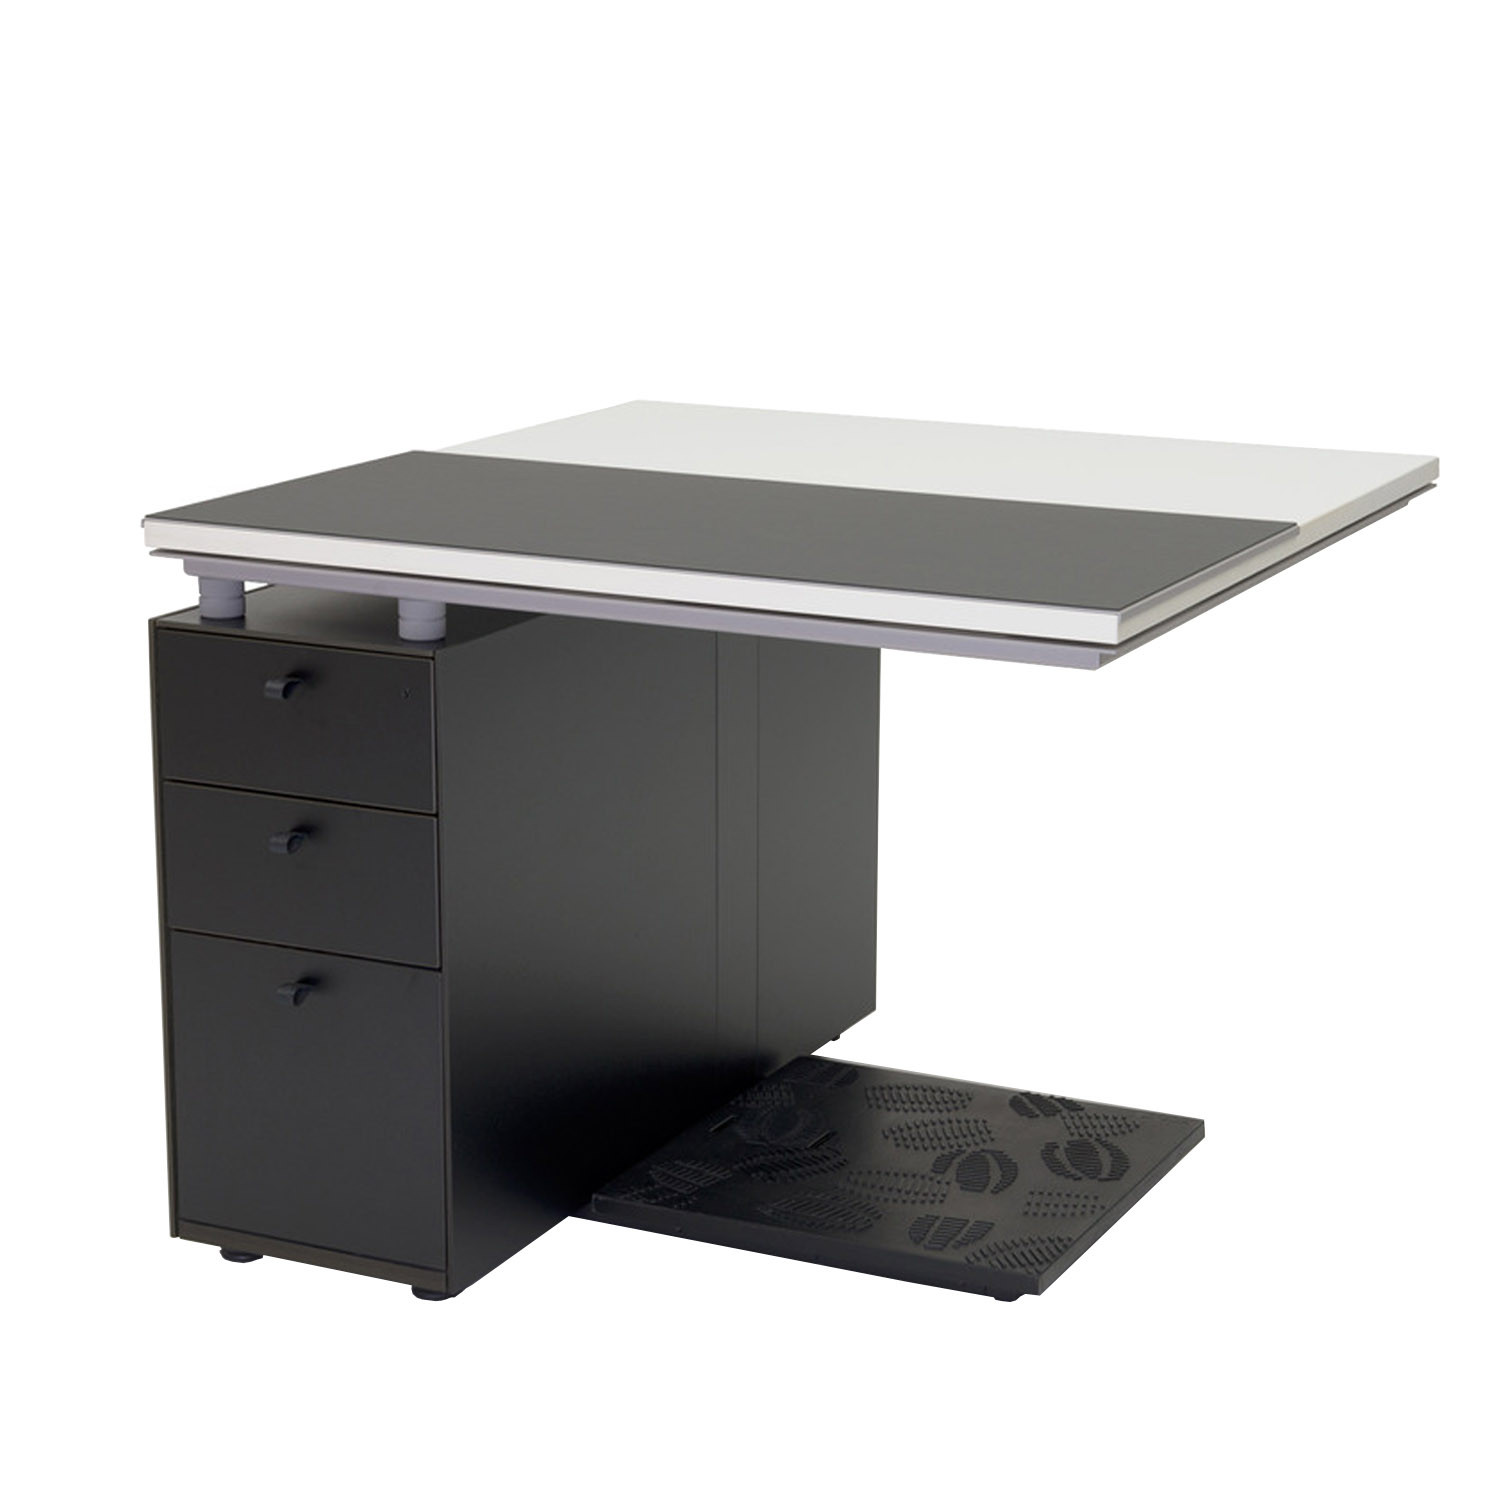 M2 Workstation from Bulo